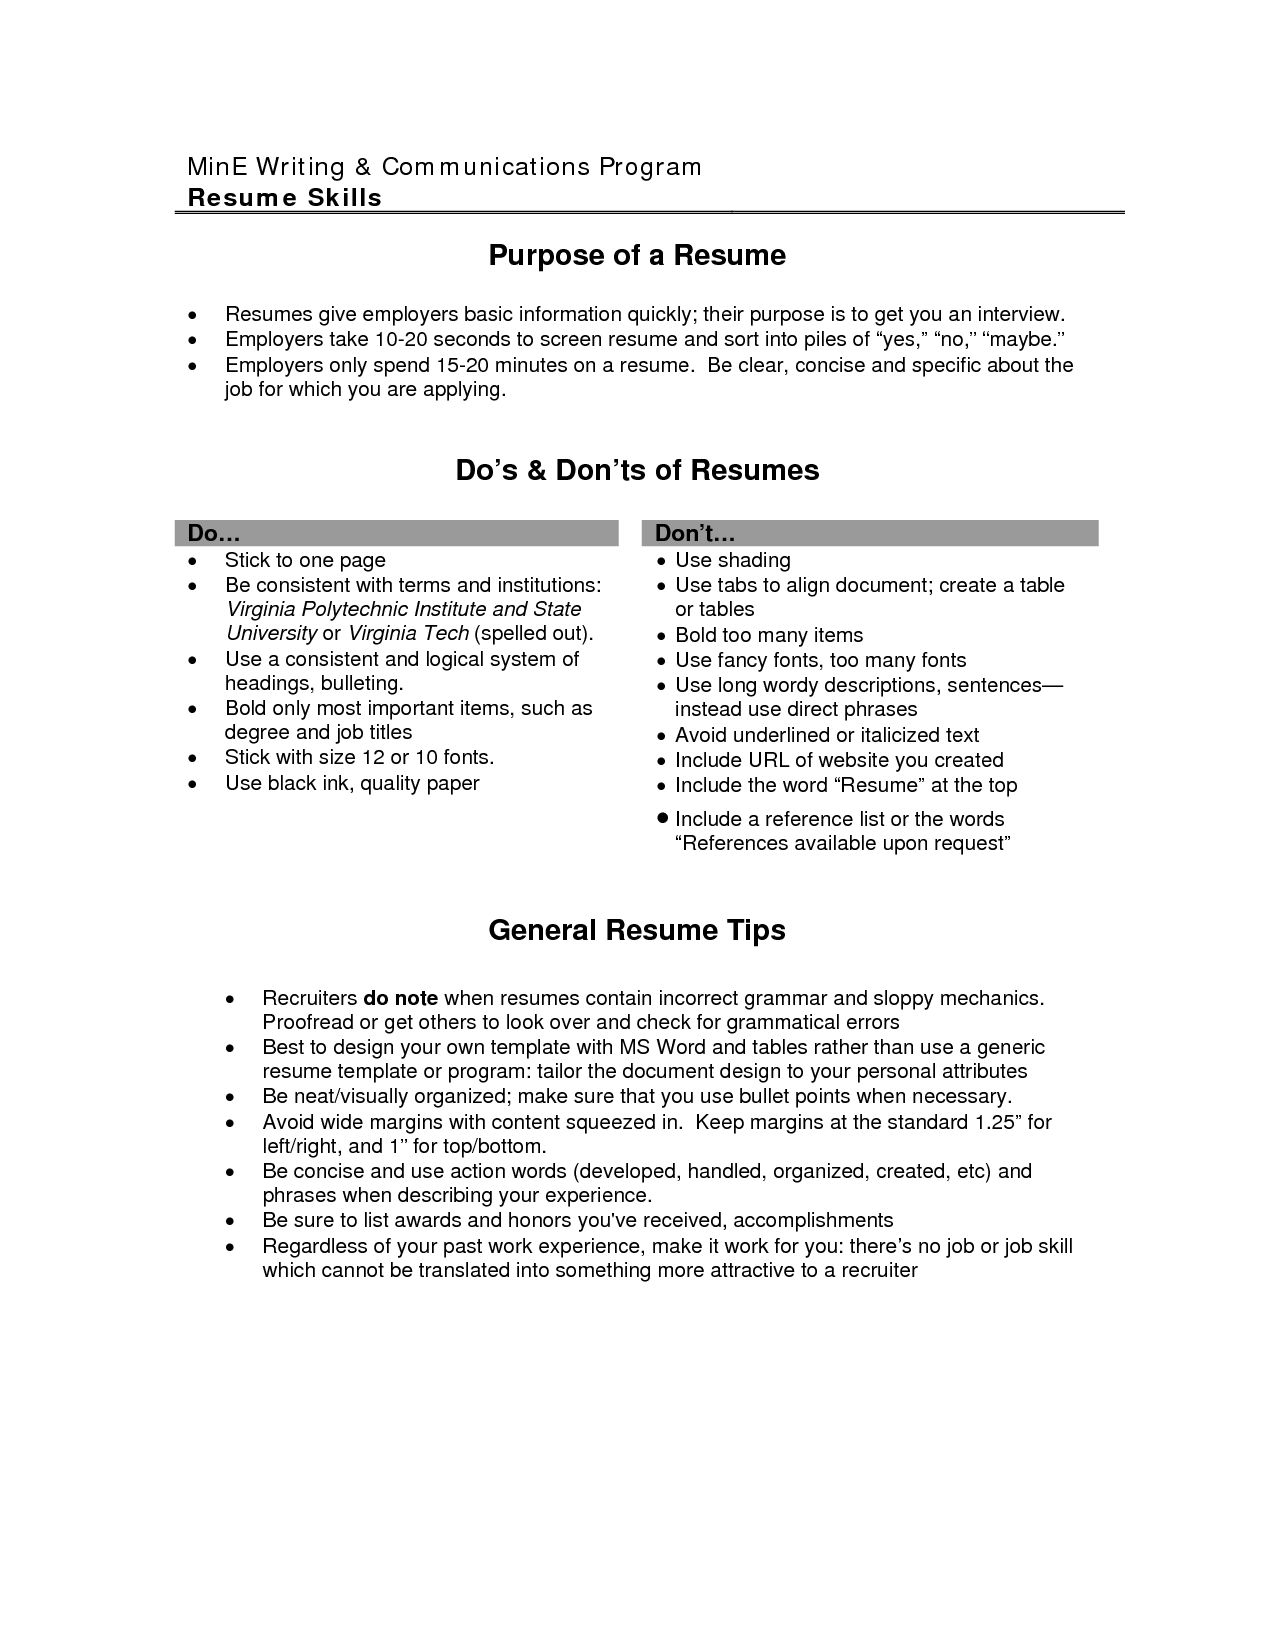 Typical Resume Format Top Resume Skills Entry Level Template The Create Your Building